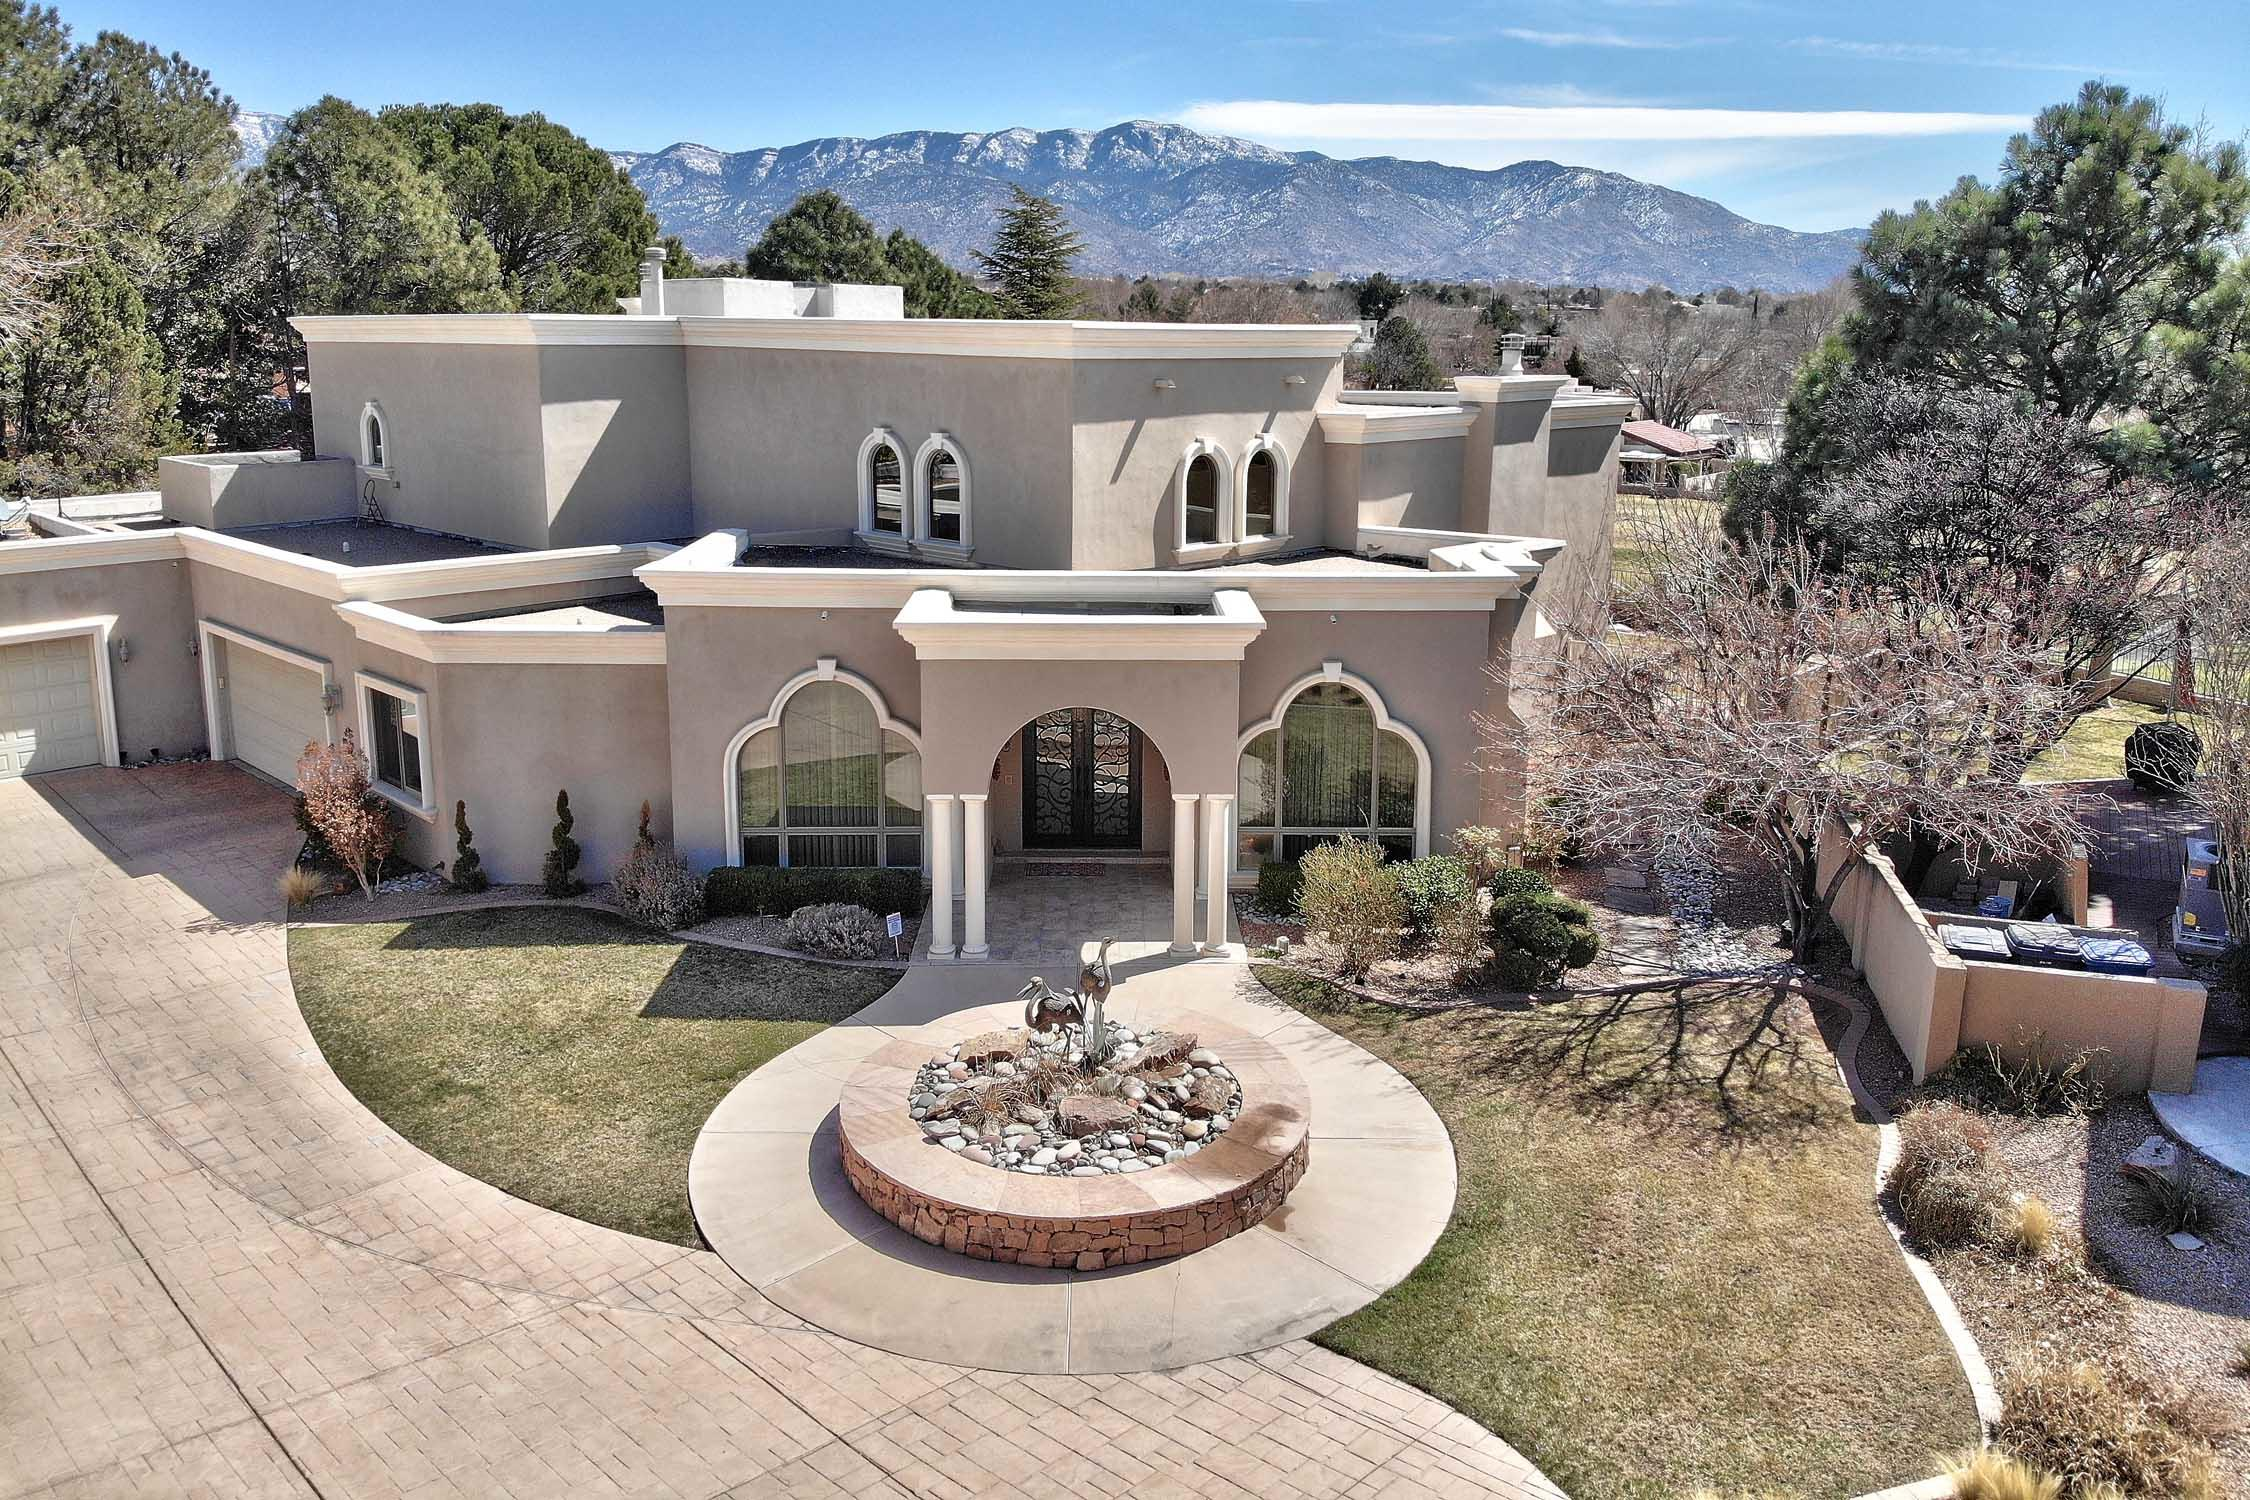 Dramatic price adjustment!! Live your dream...in this extraordinarily beautiful, luxury home!  Quality built. Tanoan Golf course lot  with views of mountains, golf course ! Some of the exceptional features ... elevator to upper bedrooms, Cantera custom entry doors, 22ft ceilings, all walls are diamond plaster, Movie room with 180 inch screen, stunning master (opens to wrap around balcony) with  19x19  closet , spa like bath and fireplace. Italian travertine floors, wet bar down and morning bar up,.  Amazing kitchen wit Sub Zero ref. and separate freezer, 6 burner, plus grill, Wolf range and double ovens, granite counter tops and custom cabinets.  Large inground pool with auto safety cover and inground spa. 4 car garage with built in  closets, new security system w/8 cameras...see ''mor